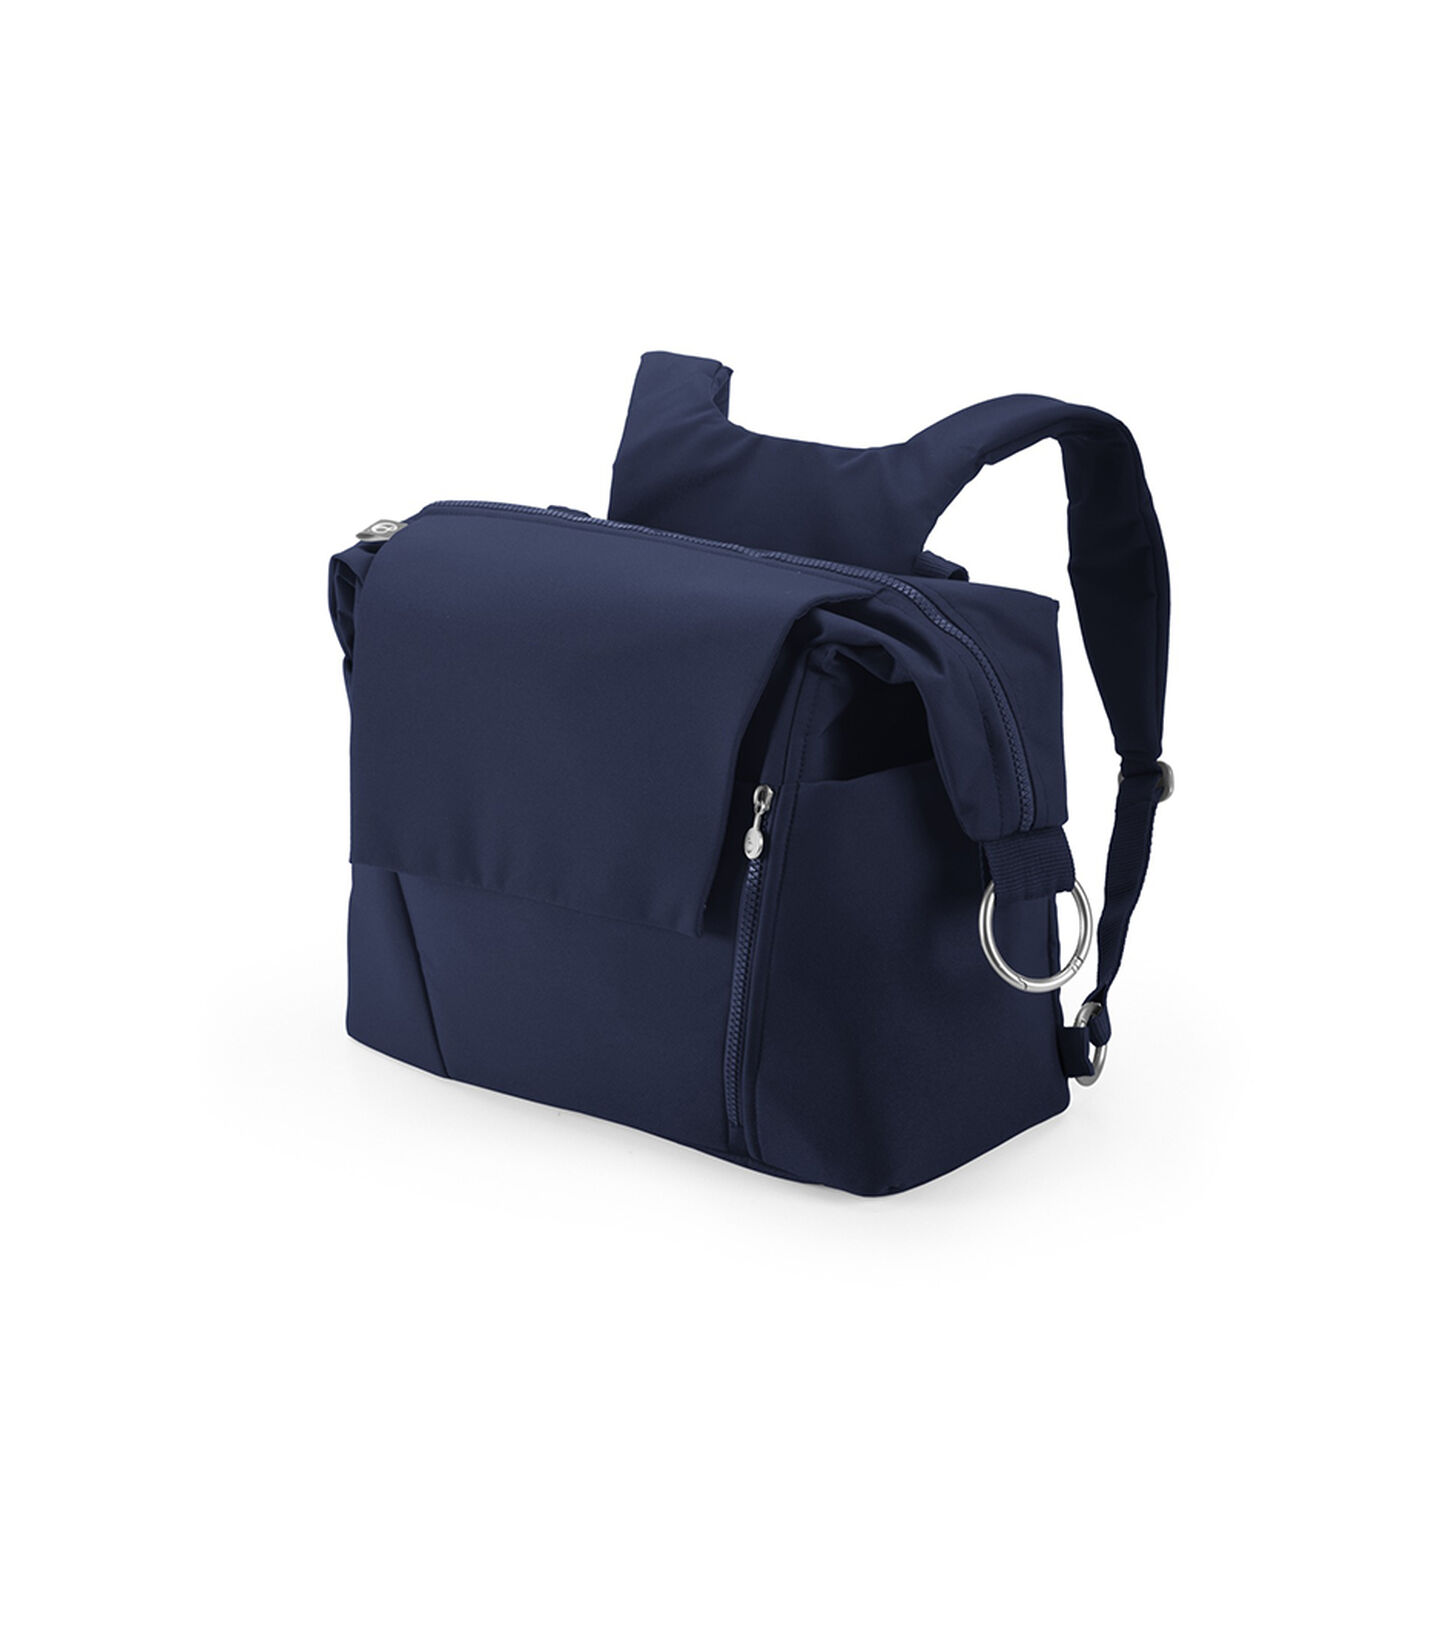 Stokke® Changing Bag Deep Blue, Deep Blue, mainview view 2